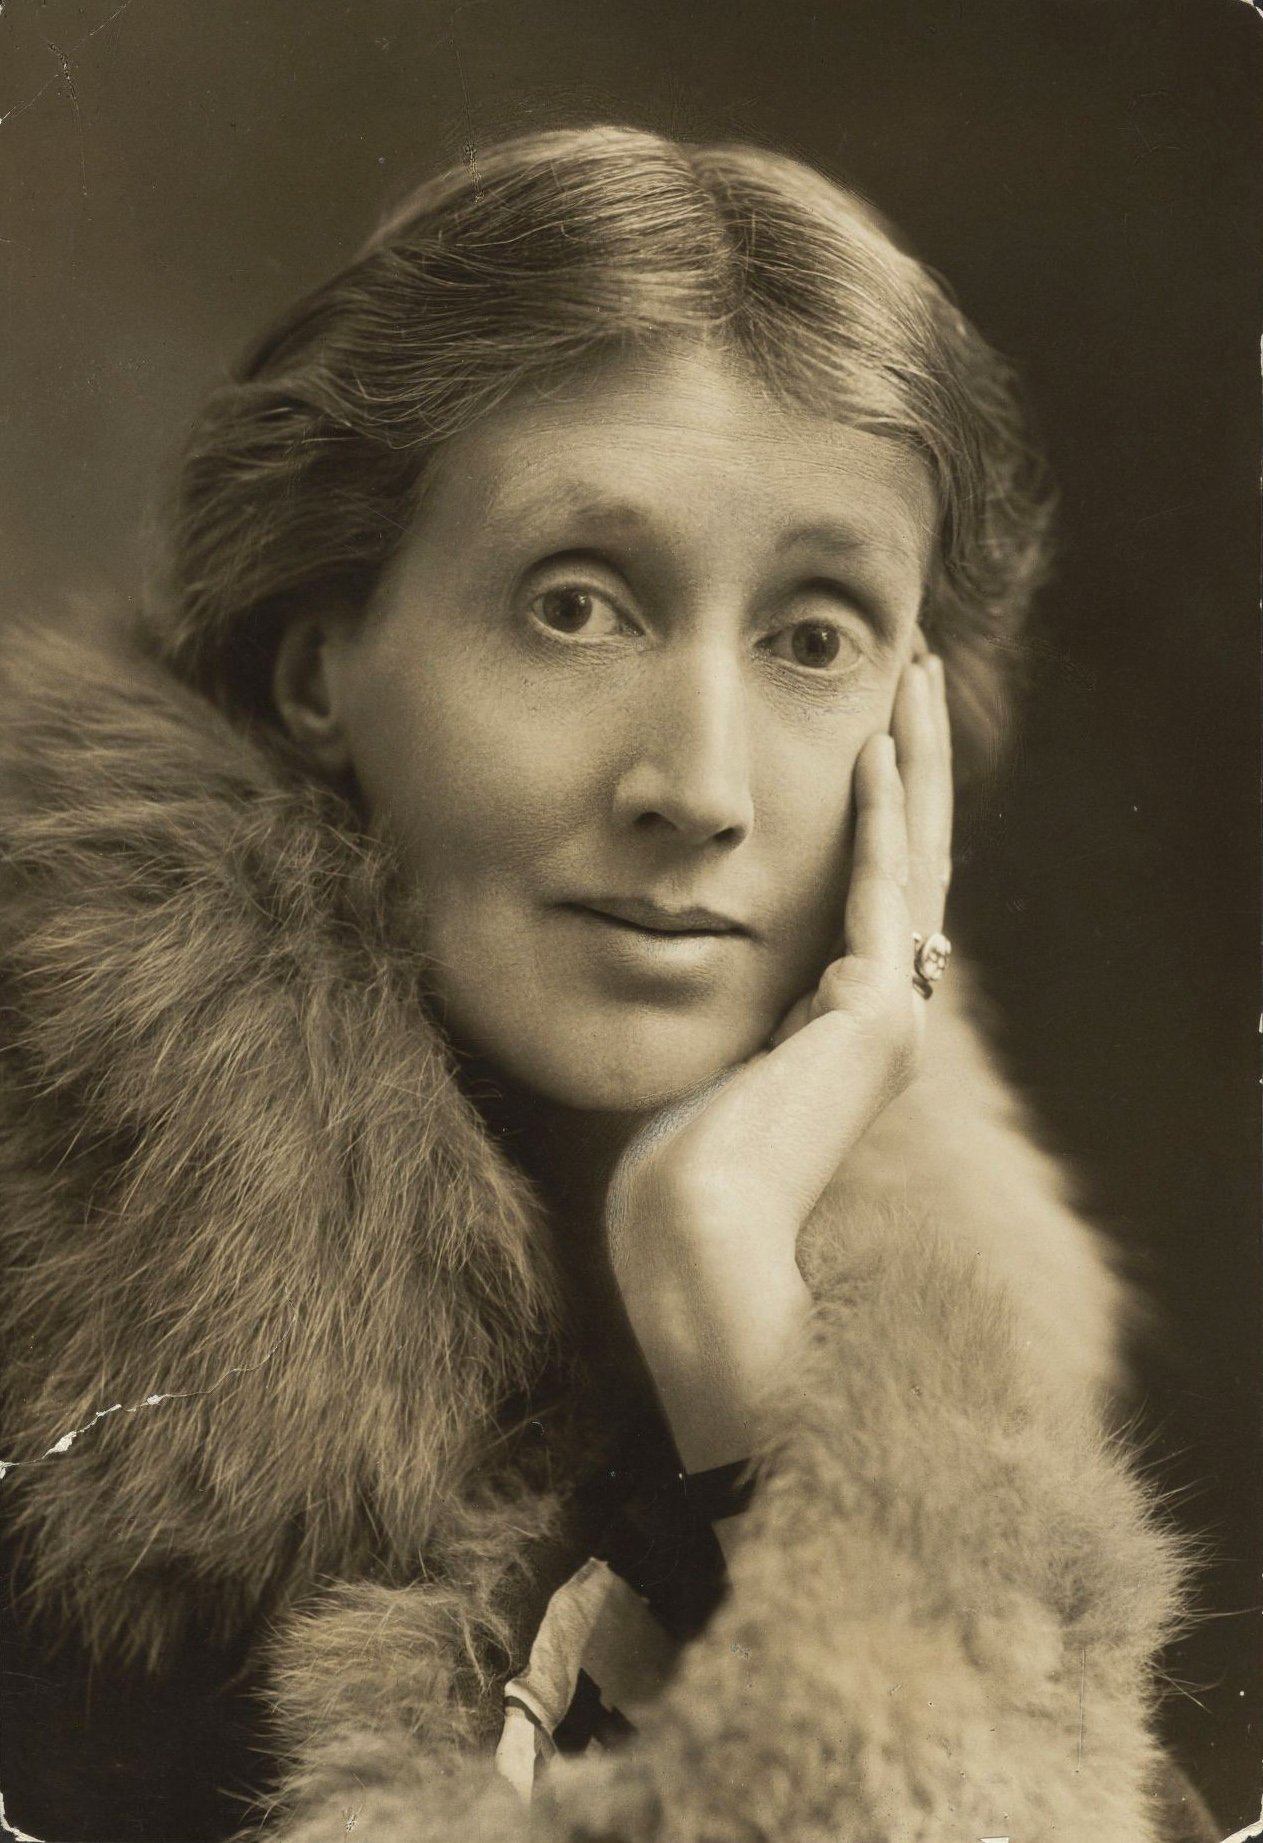 an analysis of the writing of virginia wolf Among her many literary accomplishments, virginia woolf is perhaps best known for the daring and inventive narration she used throughout her writing of all of her novels, the waves, which was published in 1931, implements some of the most innovative and bold narration that woolf employed.